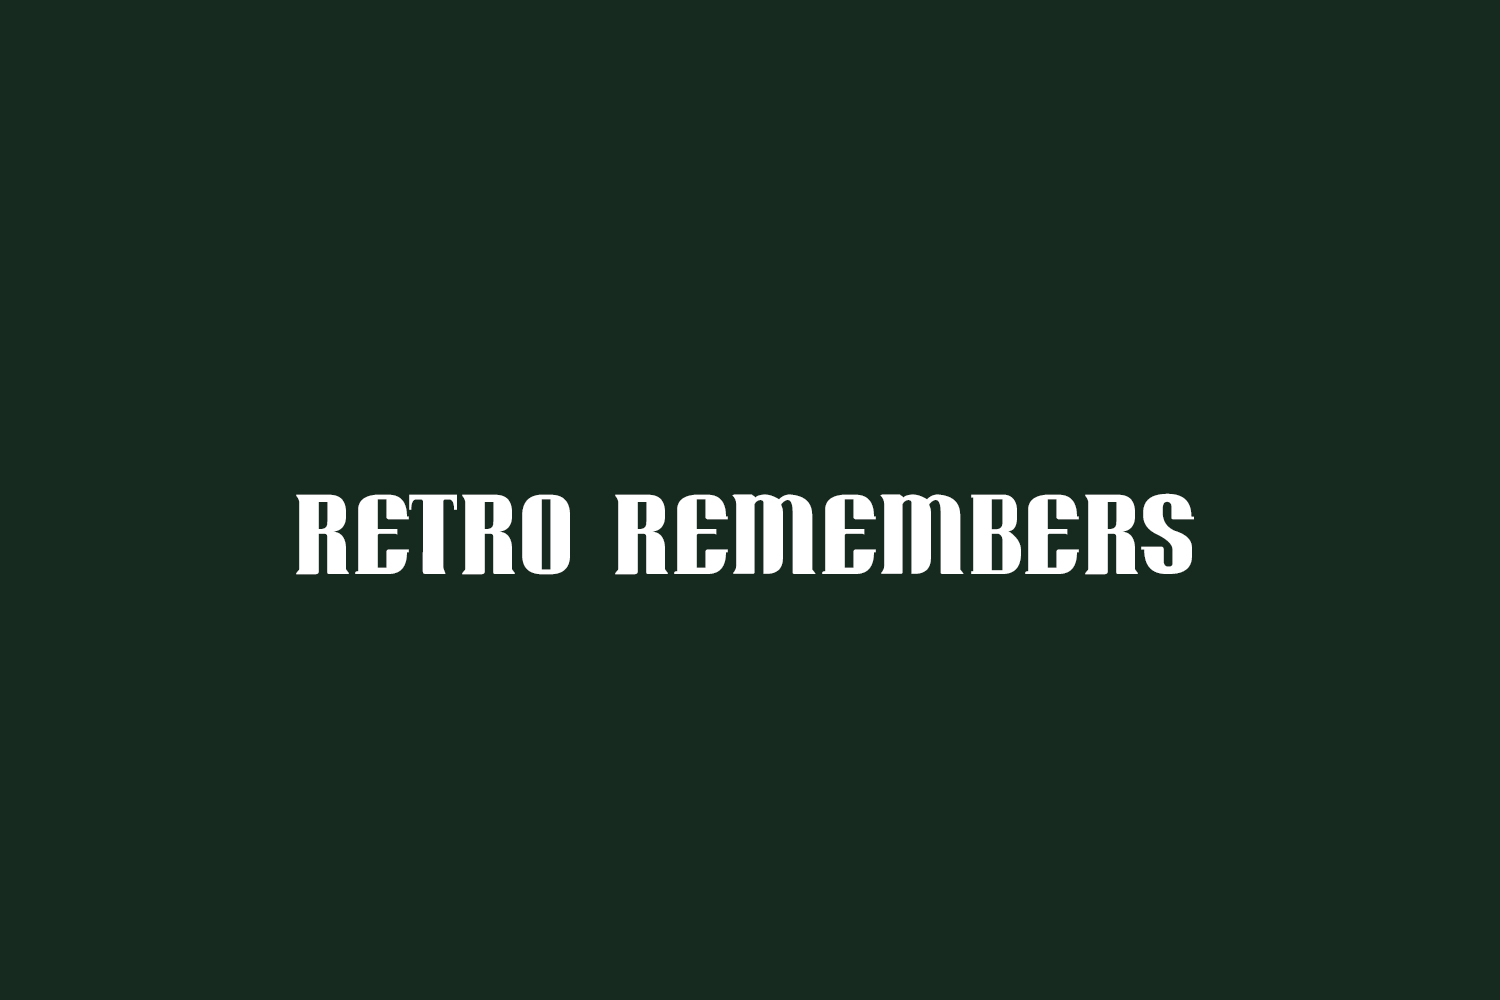 Retro Remembers Free Font